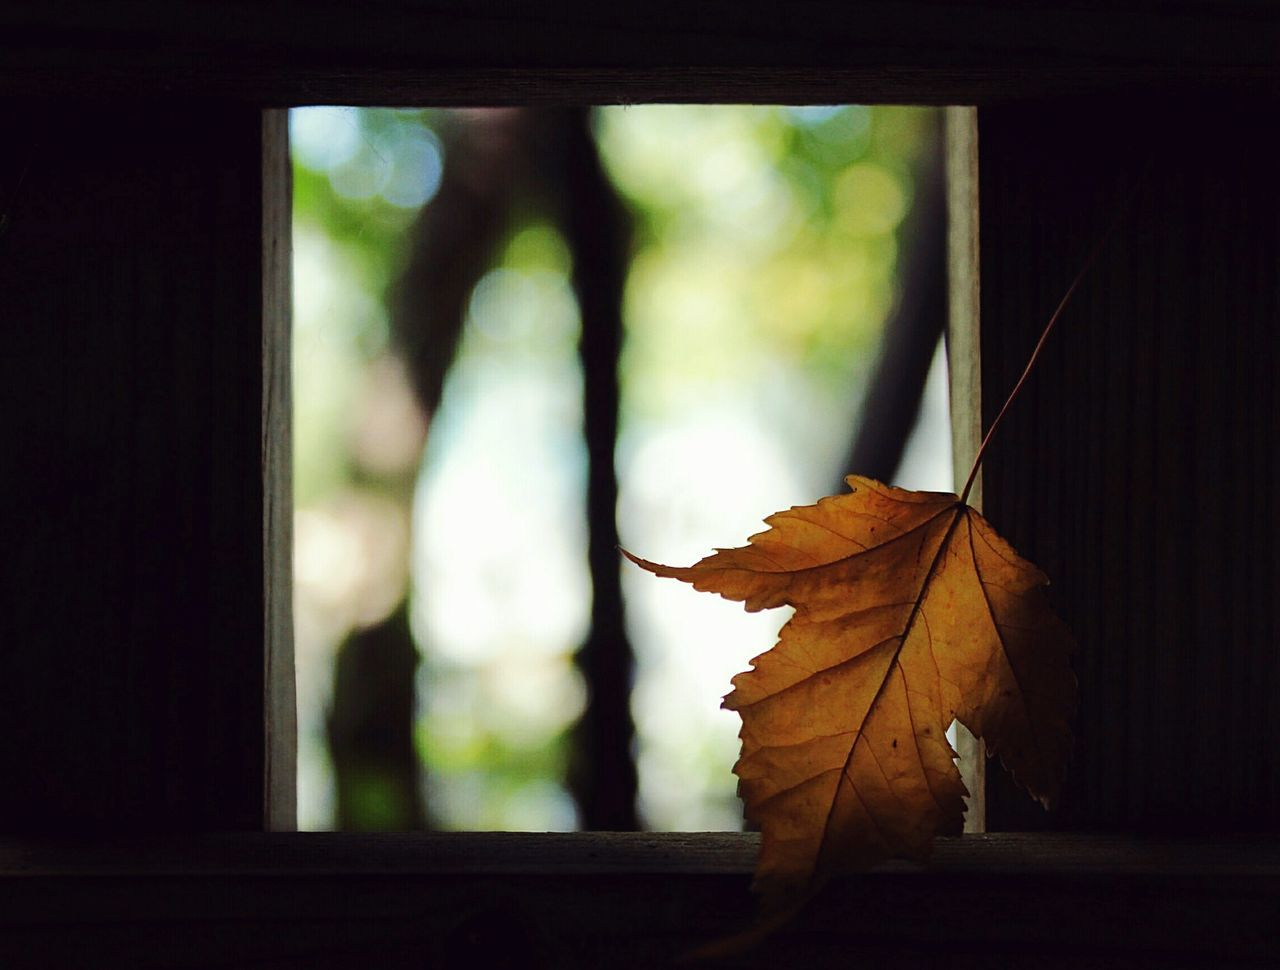 Typical Autumn, looking all beautiful and shit. Nature Leaf Autumn No People Taking Photos EyeEm Getting Inspired EyeEm Best Shots Bokeh Photography October Tranquil Scene Window